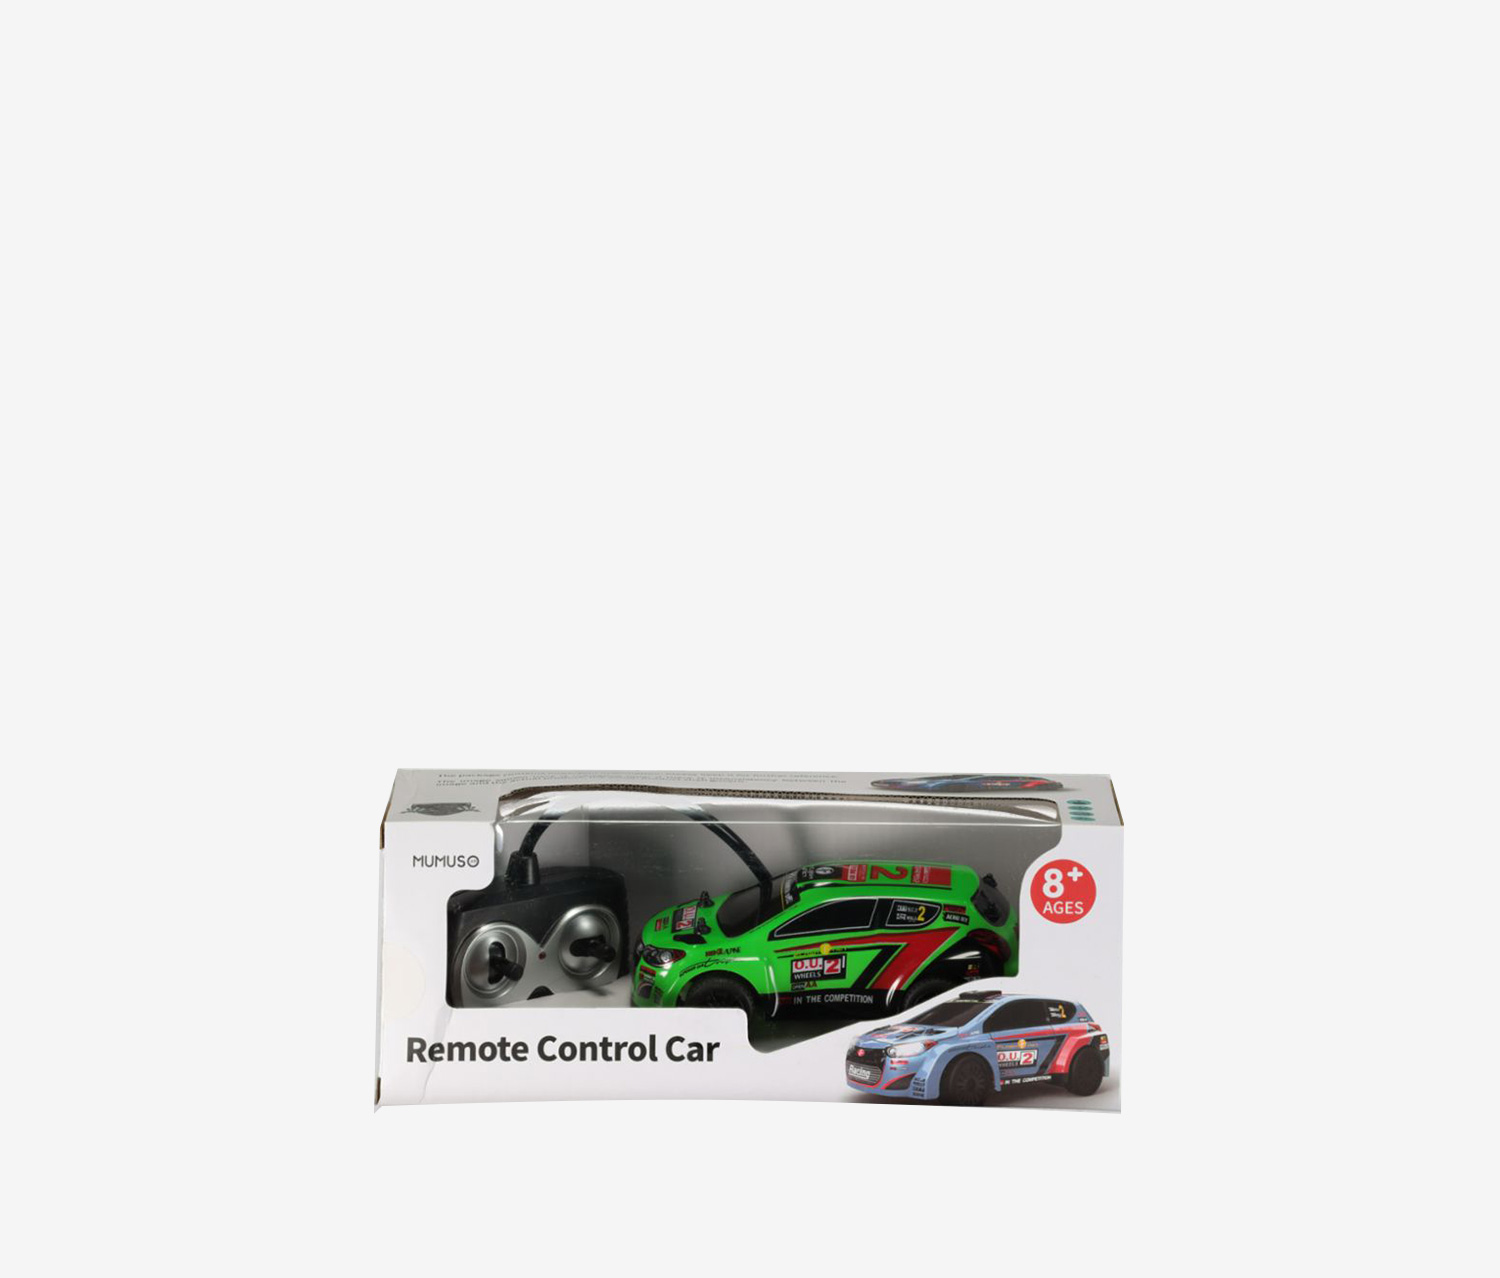 Remote Control Car, Green Combo